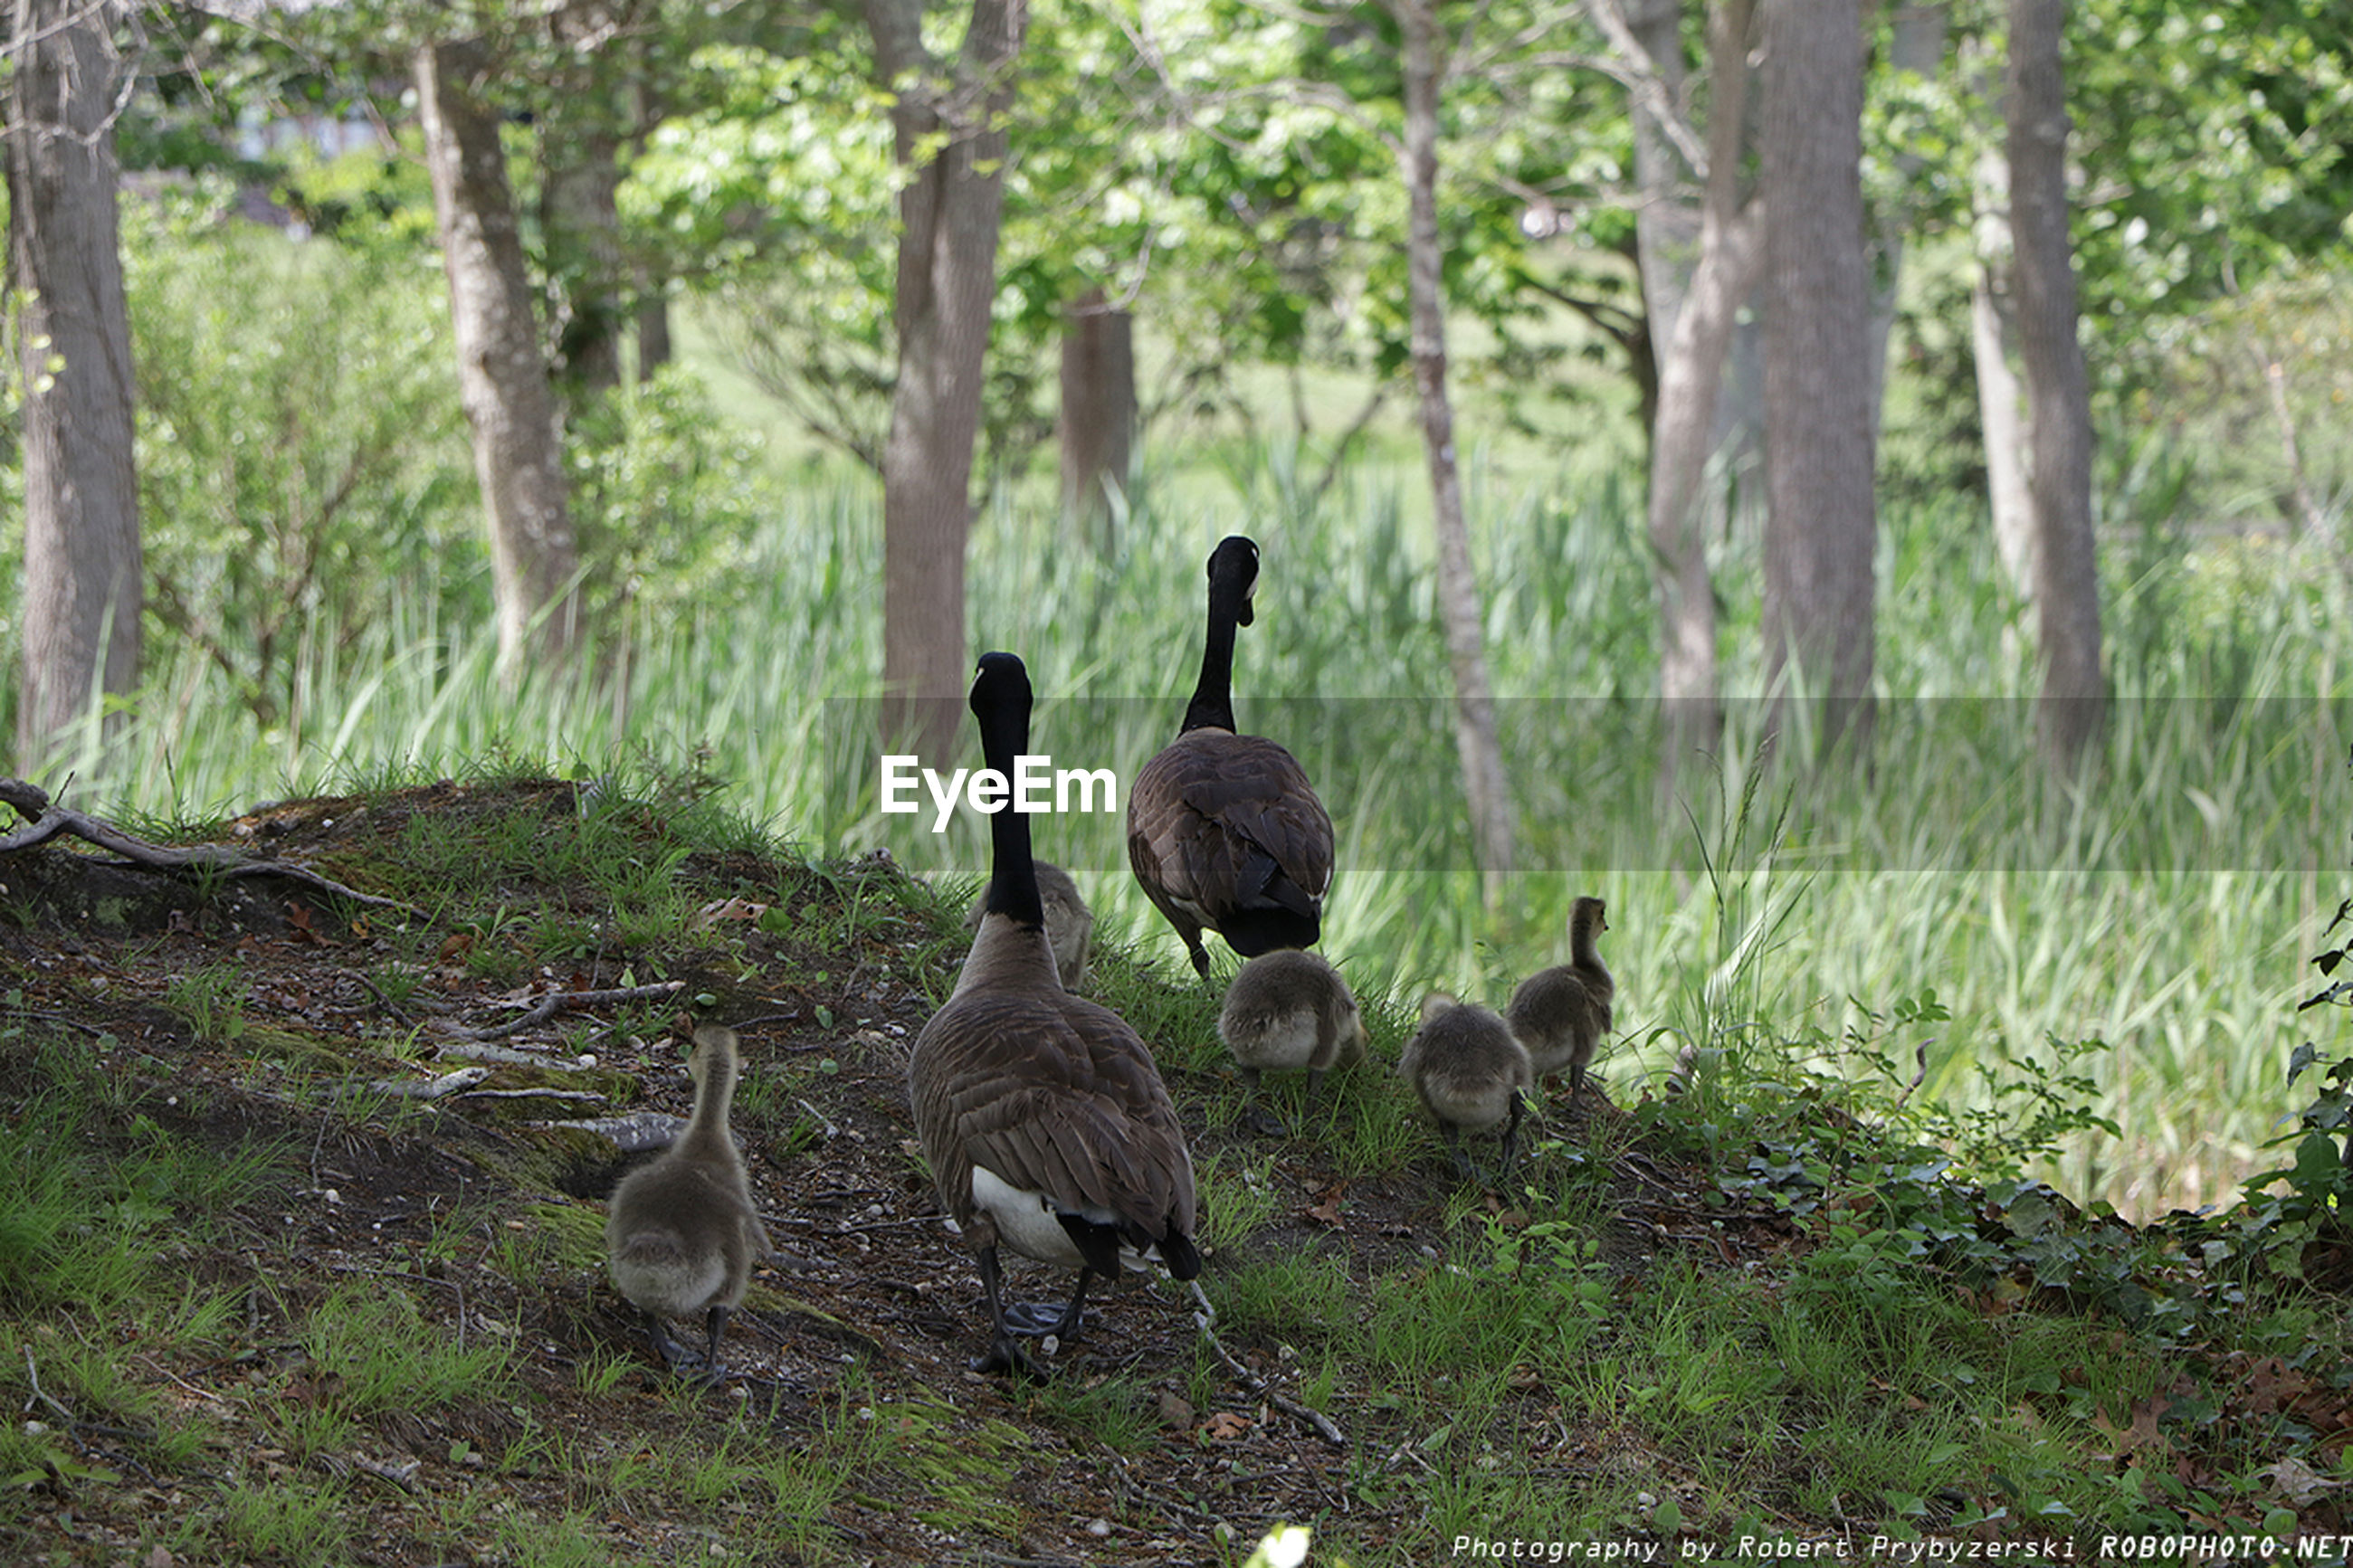 animal themes, animals in the wild, wildlife, bird, grass, field, nature, tree, forest, duck, growth, grassy, animal family, togetherness, young animal, tree trunk, outdoors, day, two animals